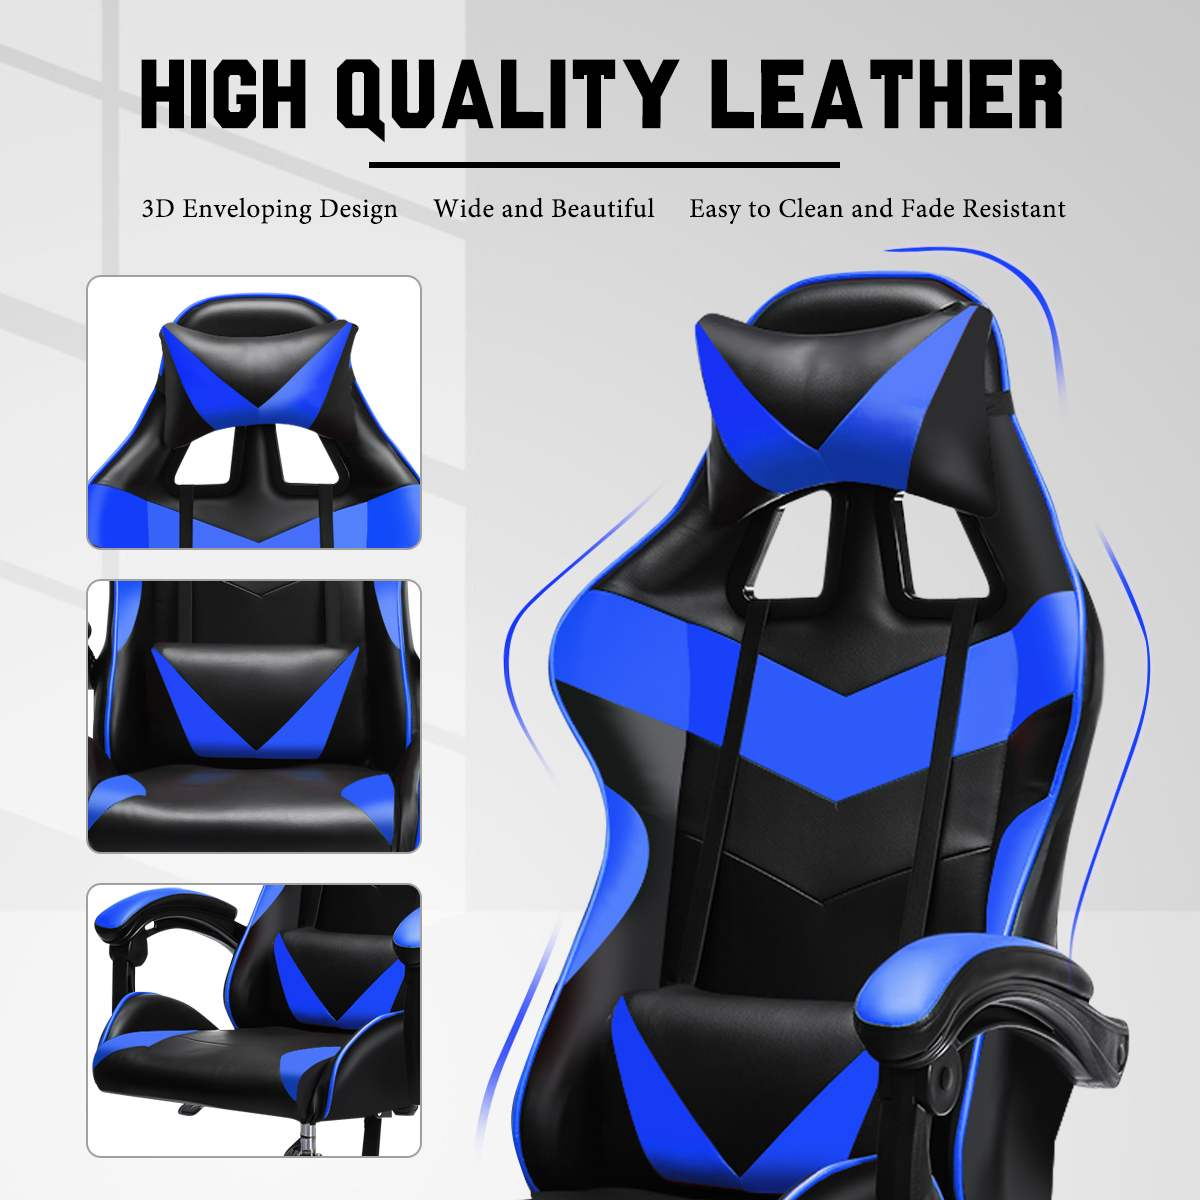 Ha3ef16ea29954c45b6fa503e7bbc90c3C - Office Gaming Chair with Footrest Ergonomic Office Chairs Adjustable Swivel Leather High Back Computer Desk Chair with Headrest